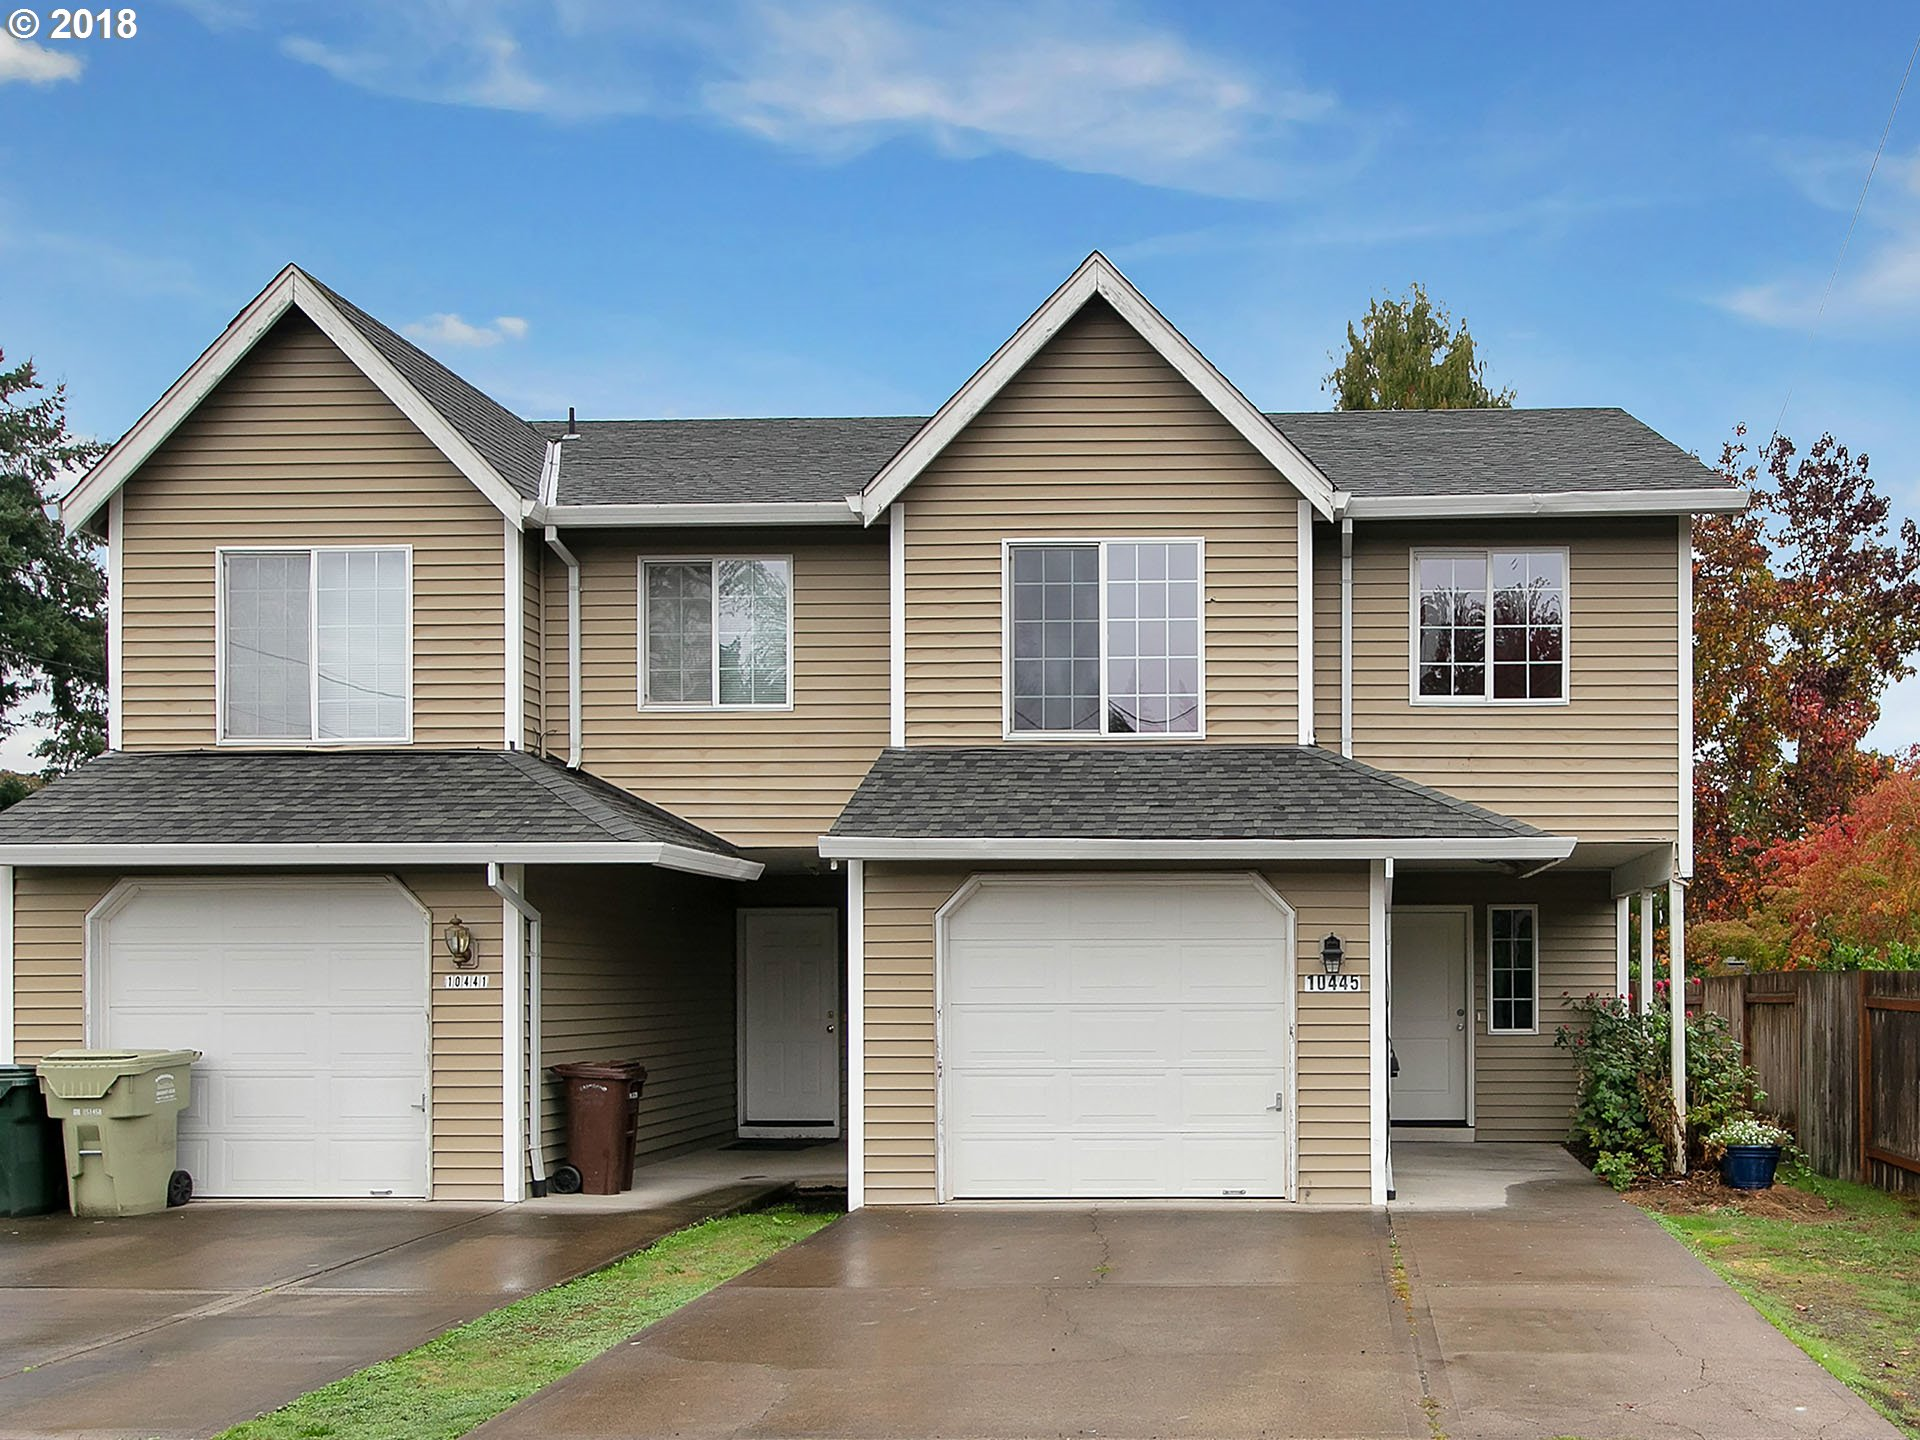 WOW!  Come check this out! Total interior update in August 2018New cabinets/appliances/quartz counters/flooring in kitchen! New interior paint, new interior doors and trim, all new flooring. Gas furnace and WH. Small fenced yard, easy freeway access.  No HOA fees!  Hurry